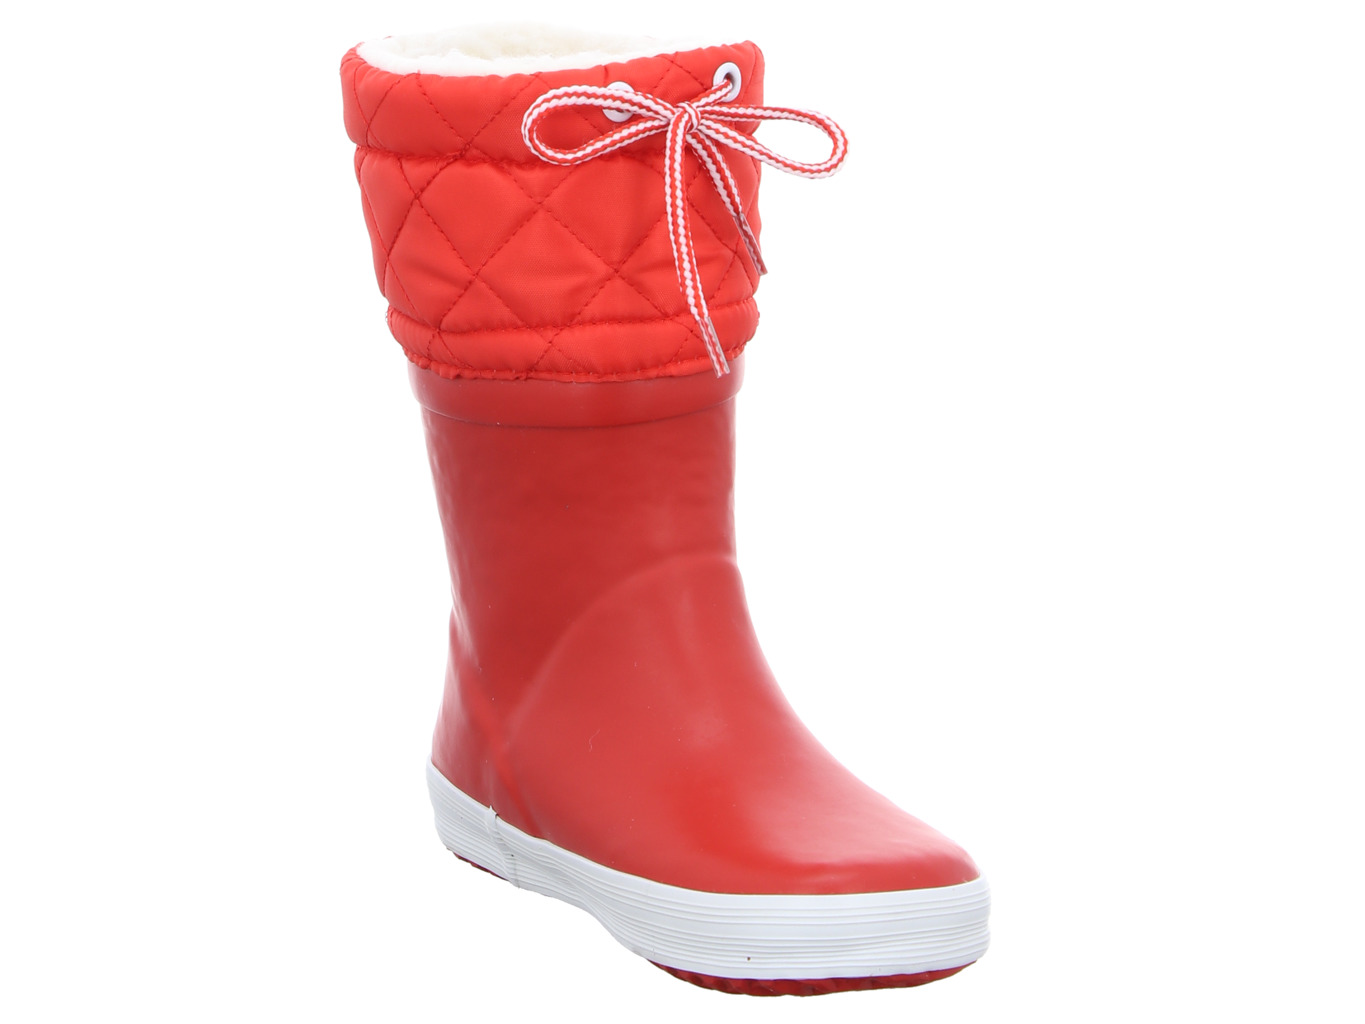 aigle_giboulee_rot_24538_rouge_6117